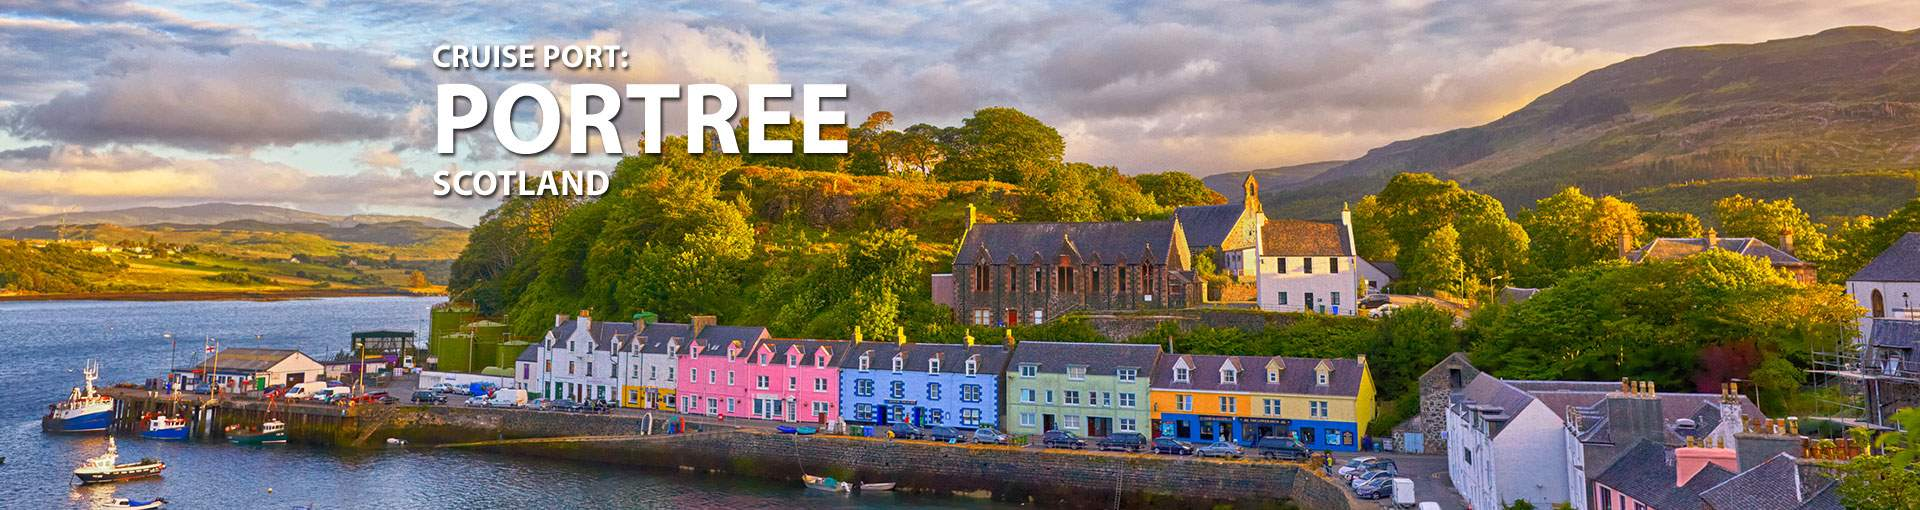 Cruises to Portree, Scotland